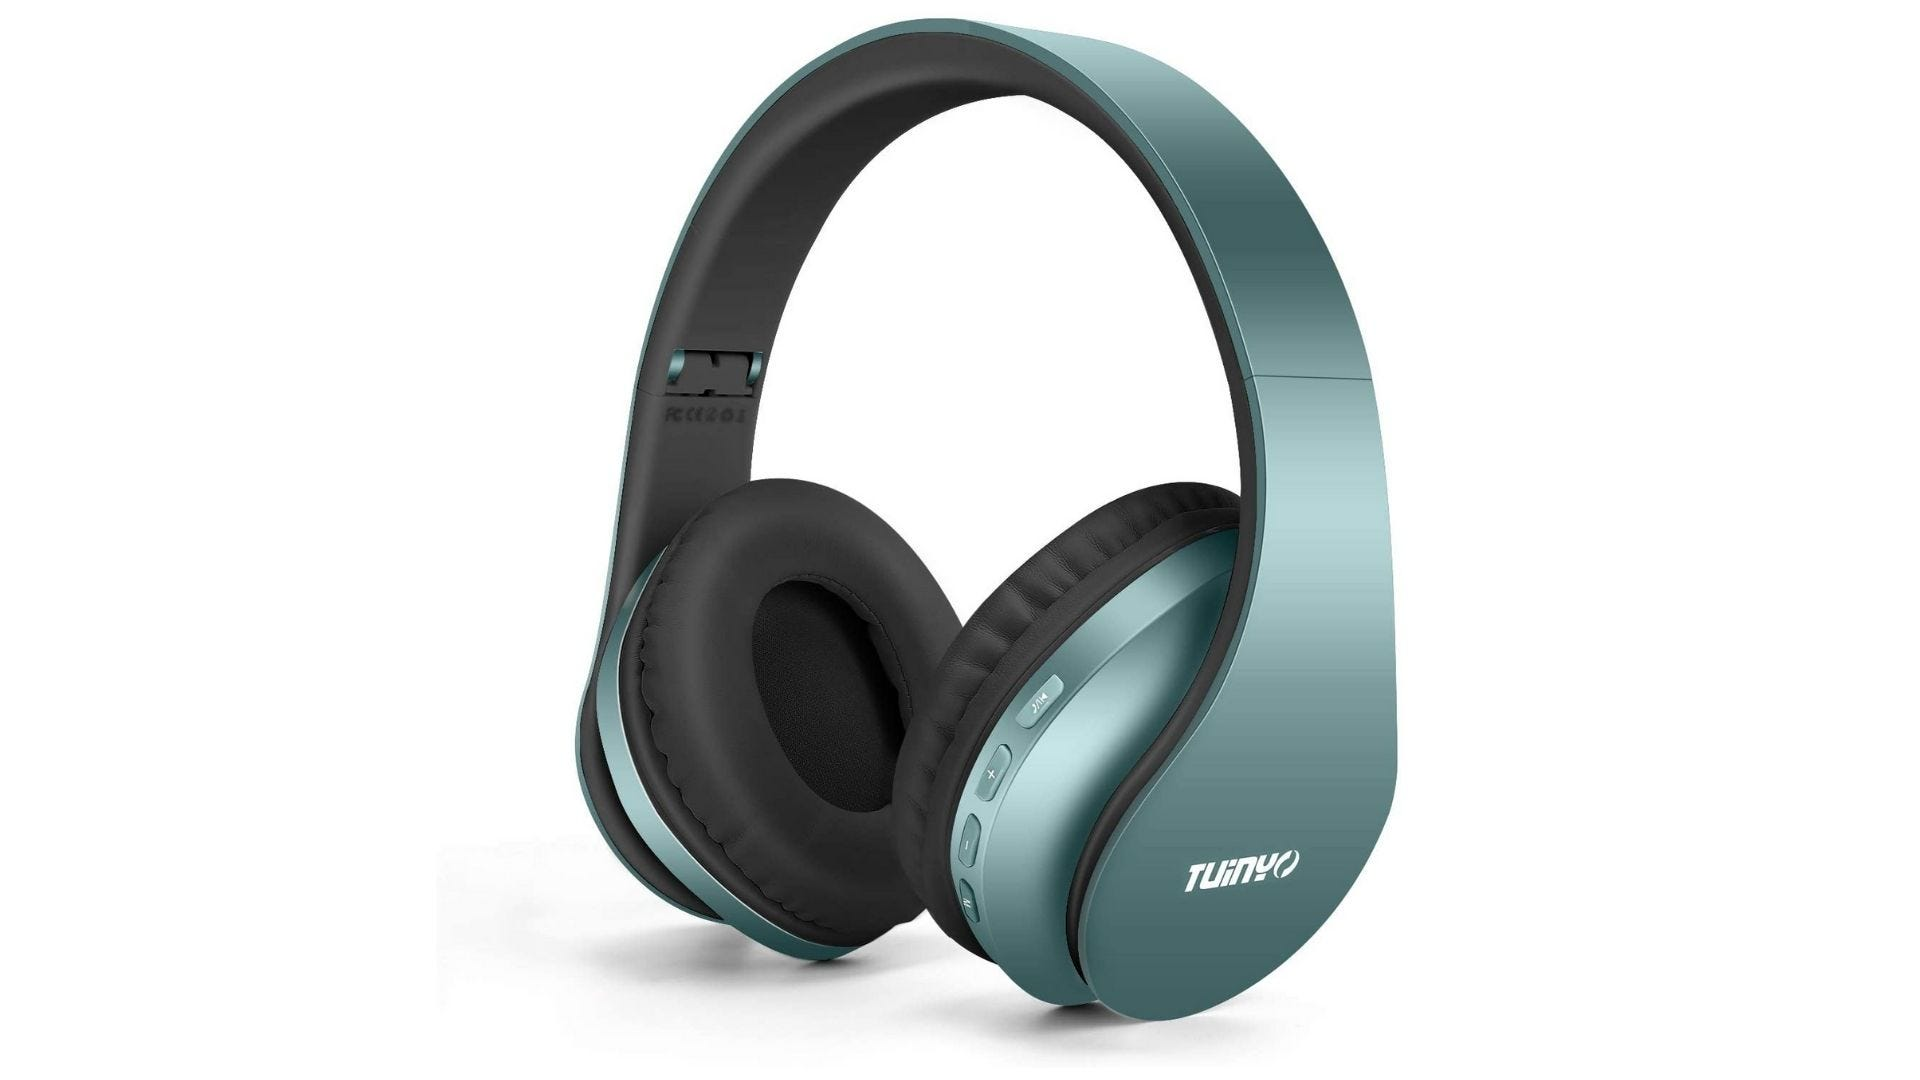 TUINYO Wireless Headphones Over Ear with Microphone